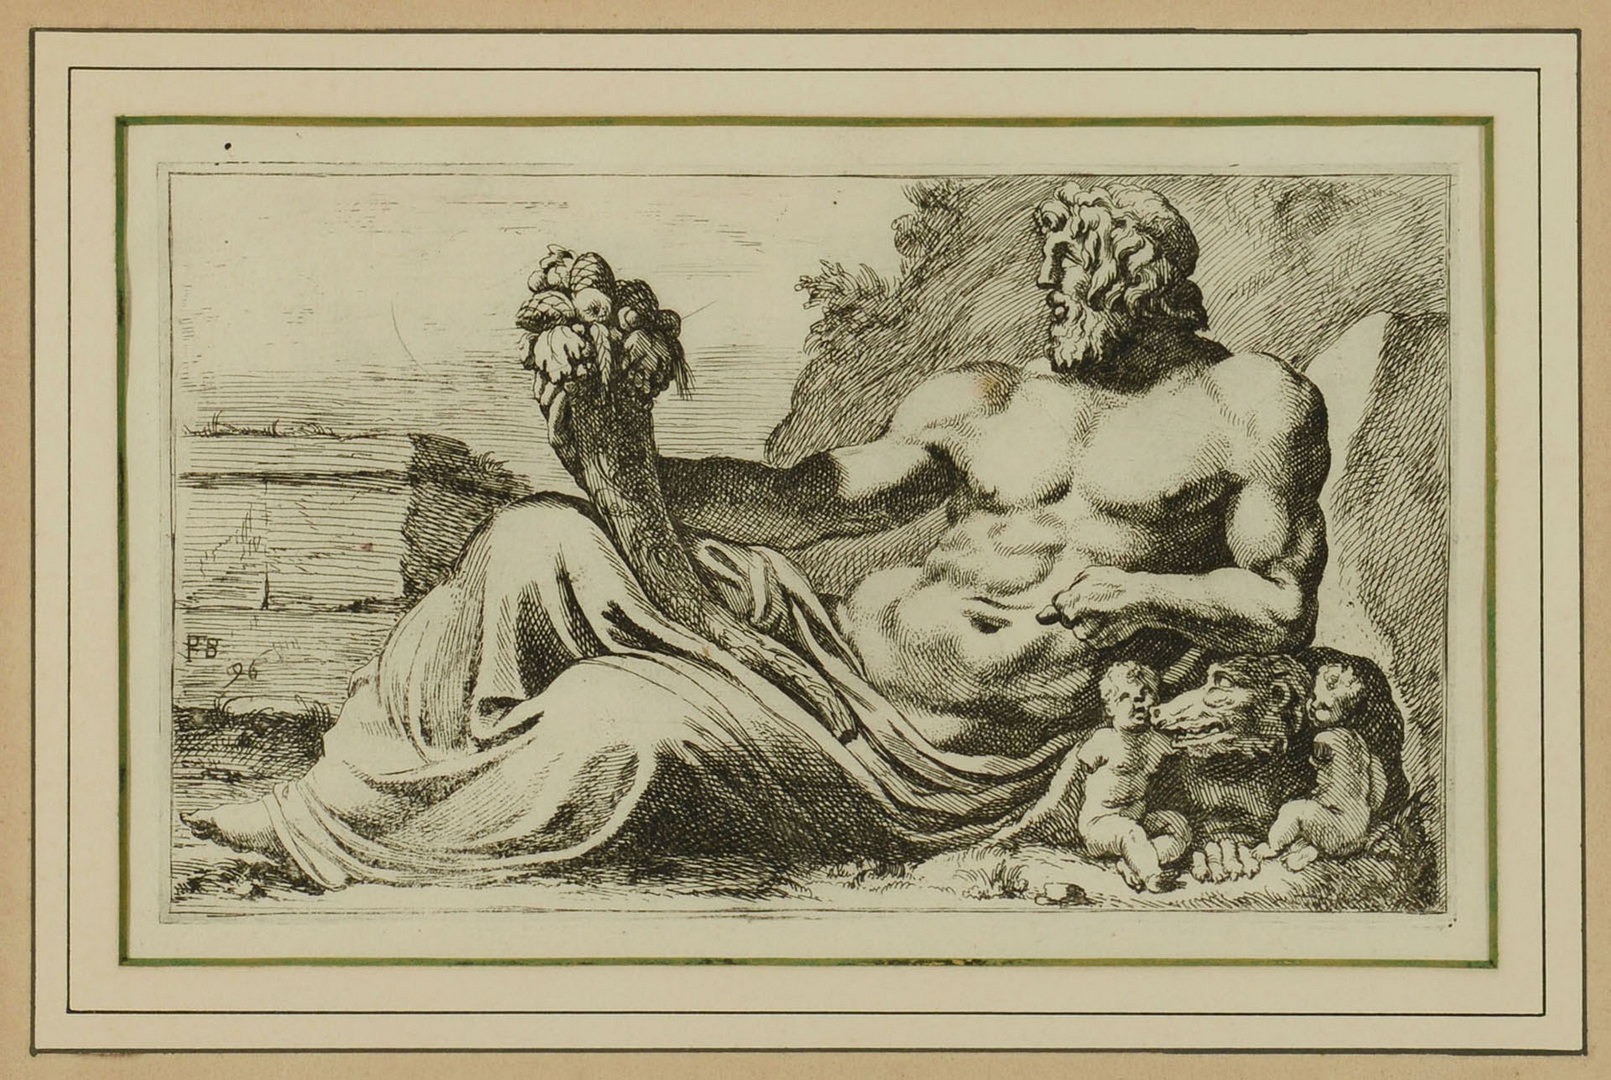 Lot 626: Group of 5 Etchings: Paris, Zeus, Thebes